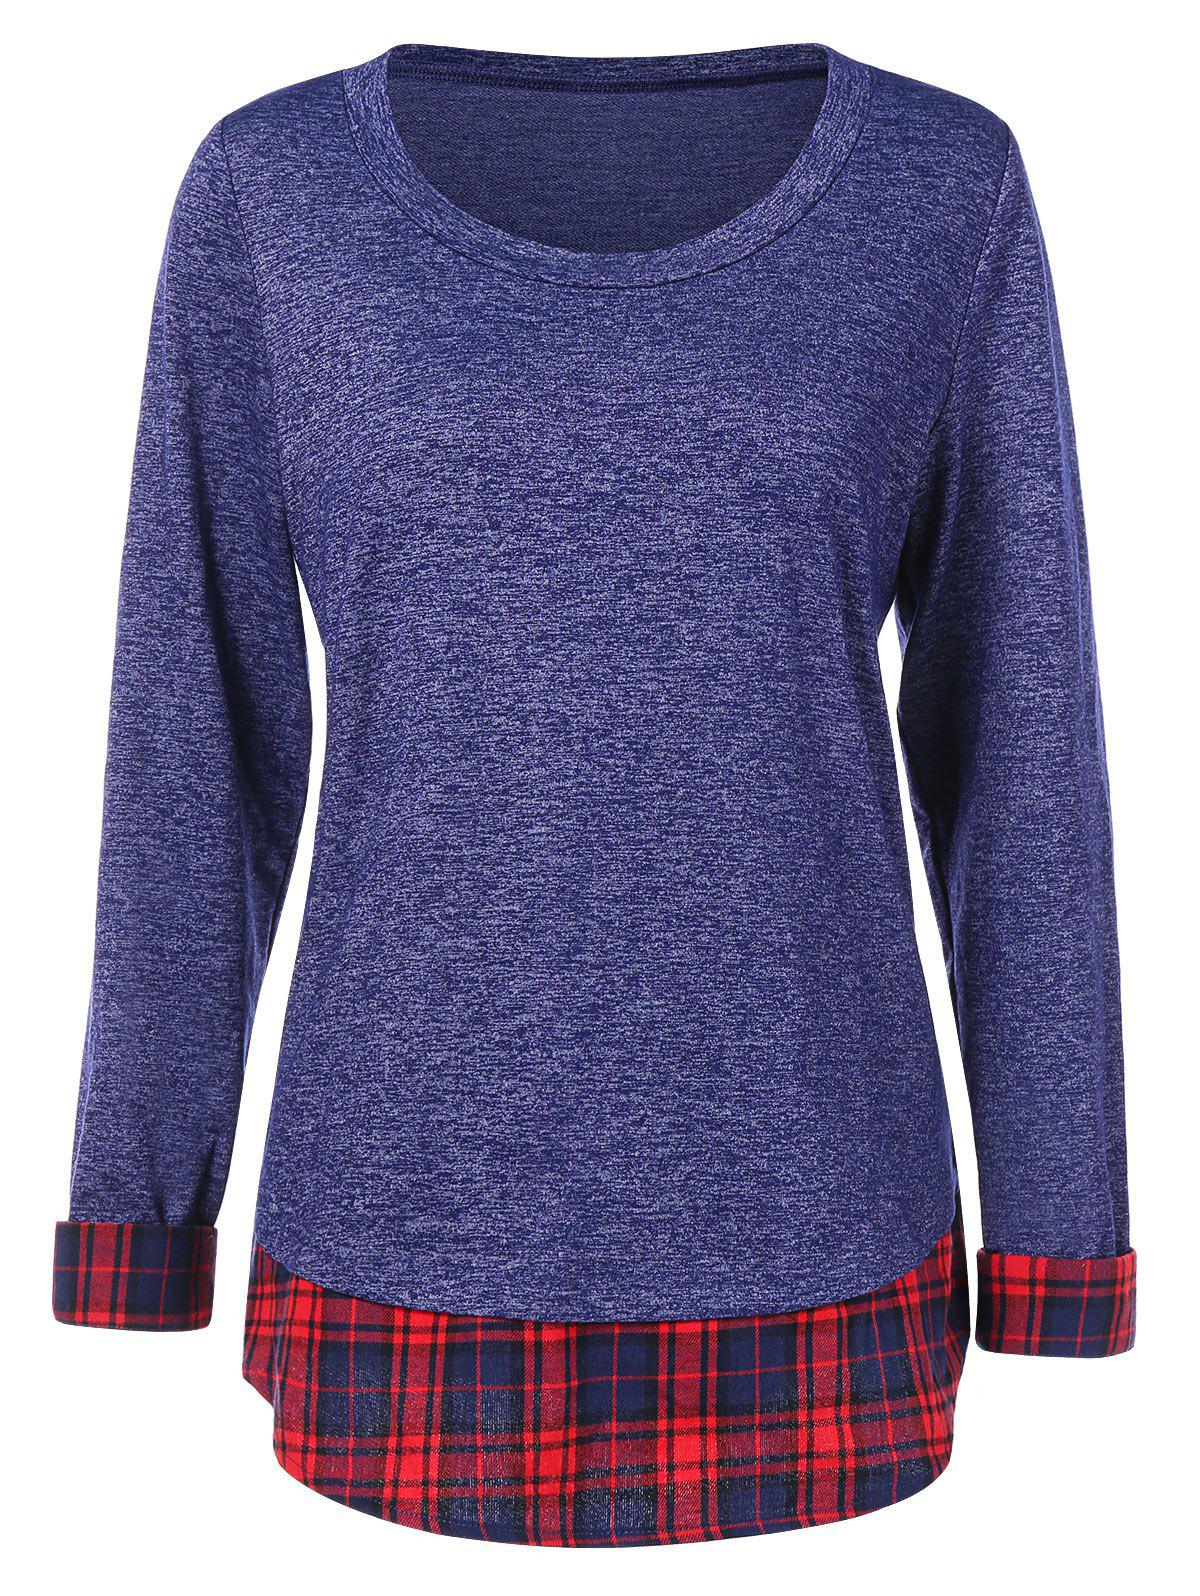 Latest Tartan Insert Full Sleeve T-shirt